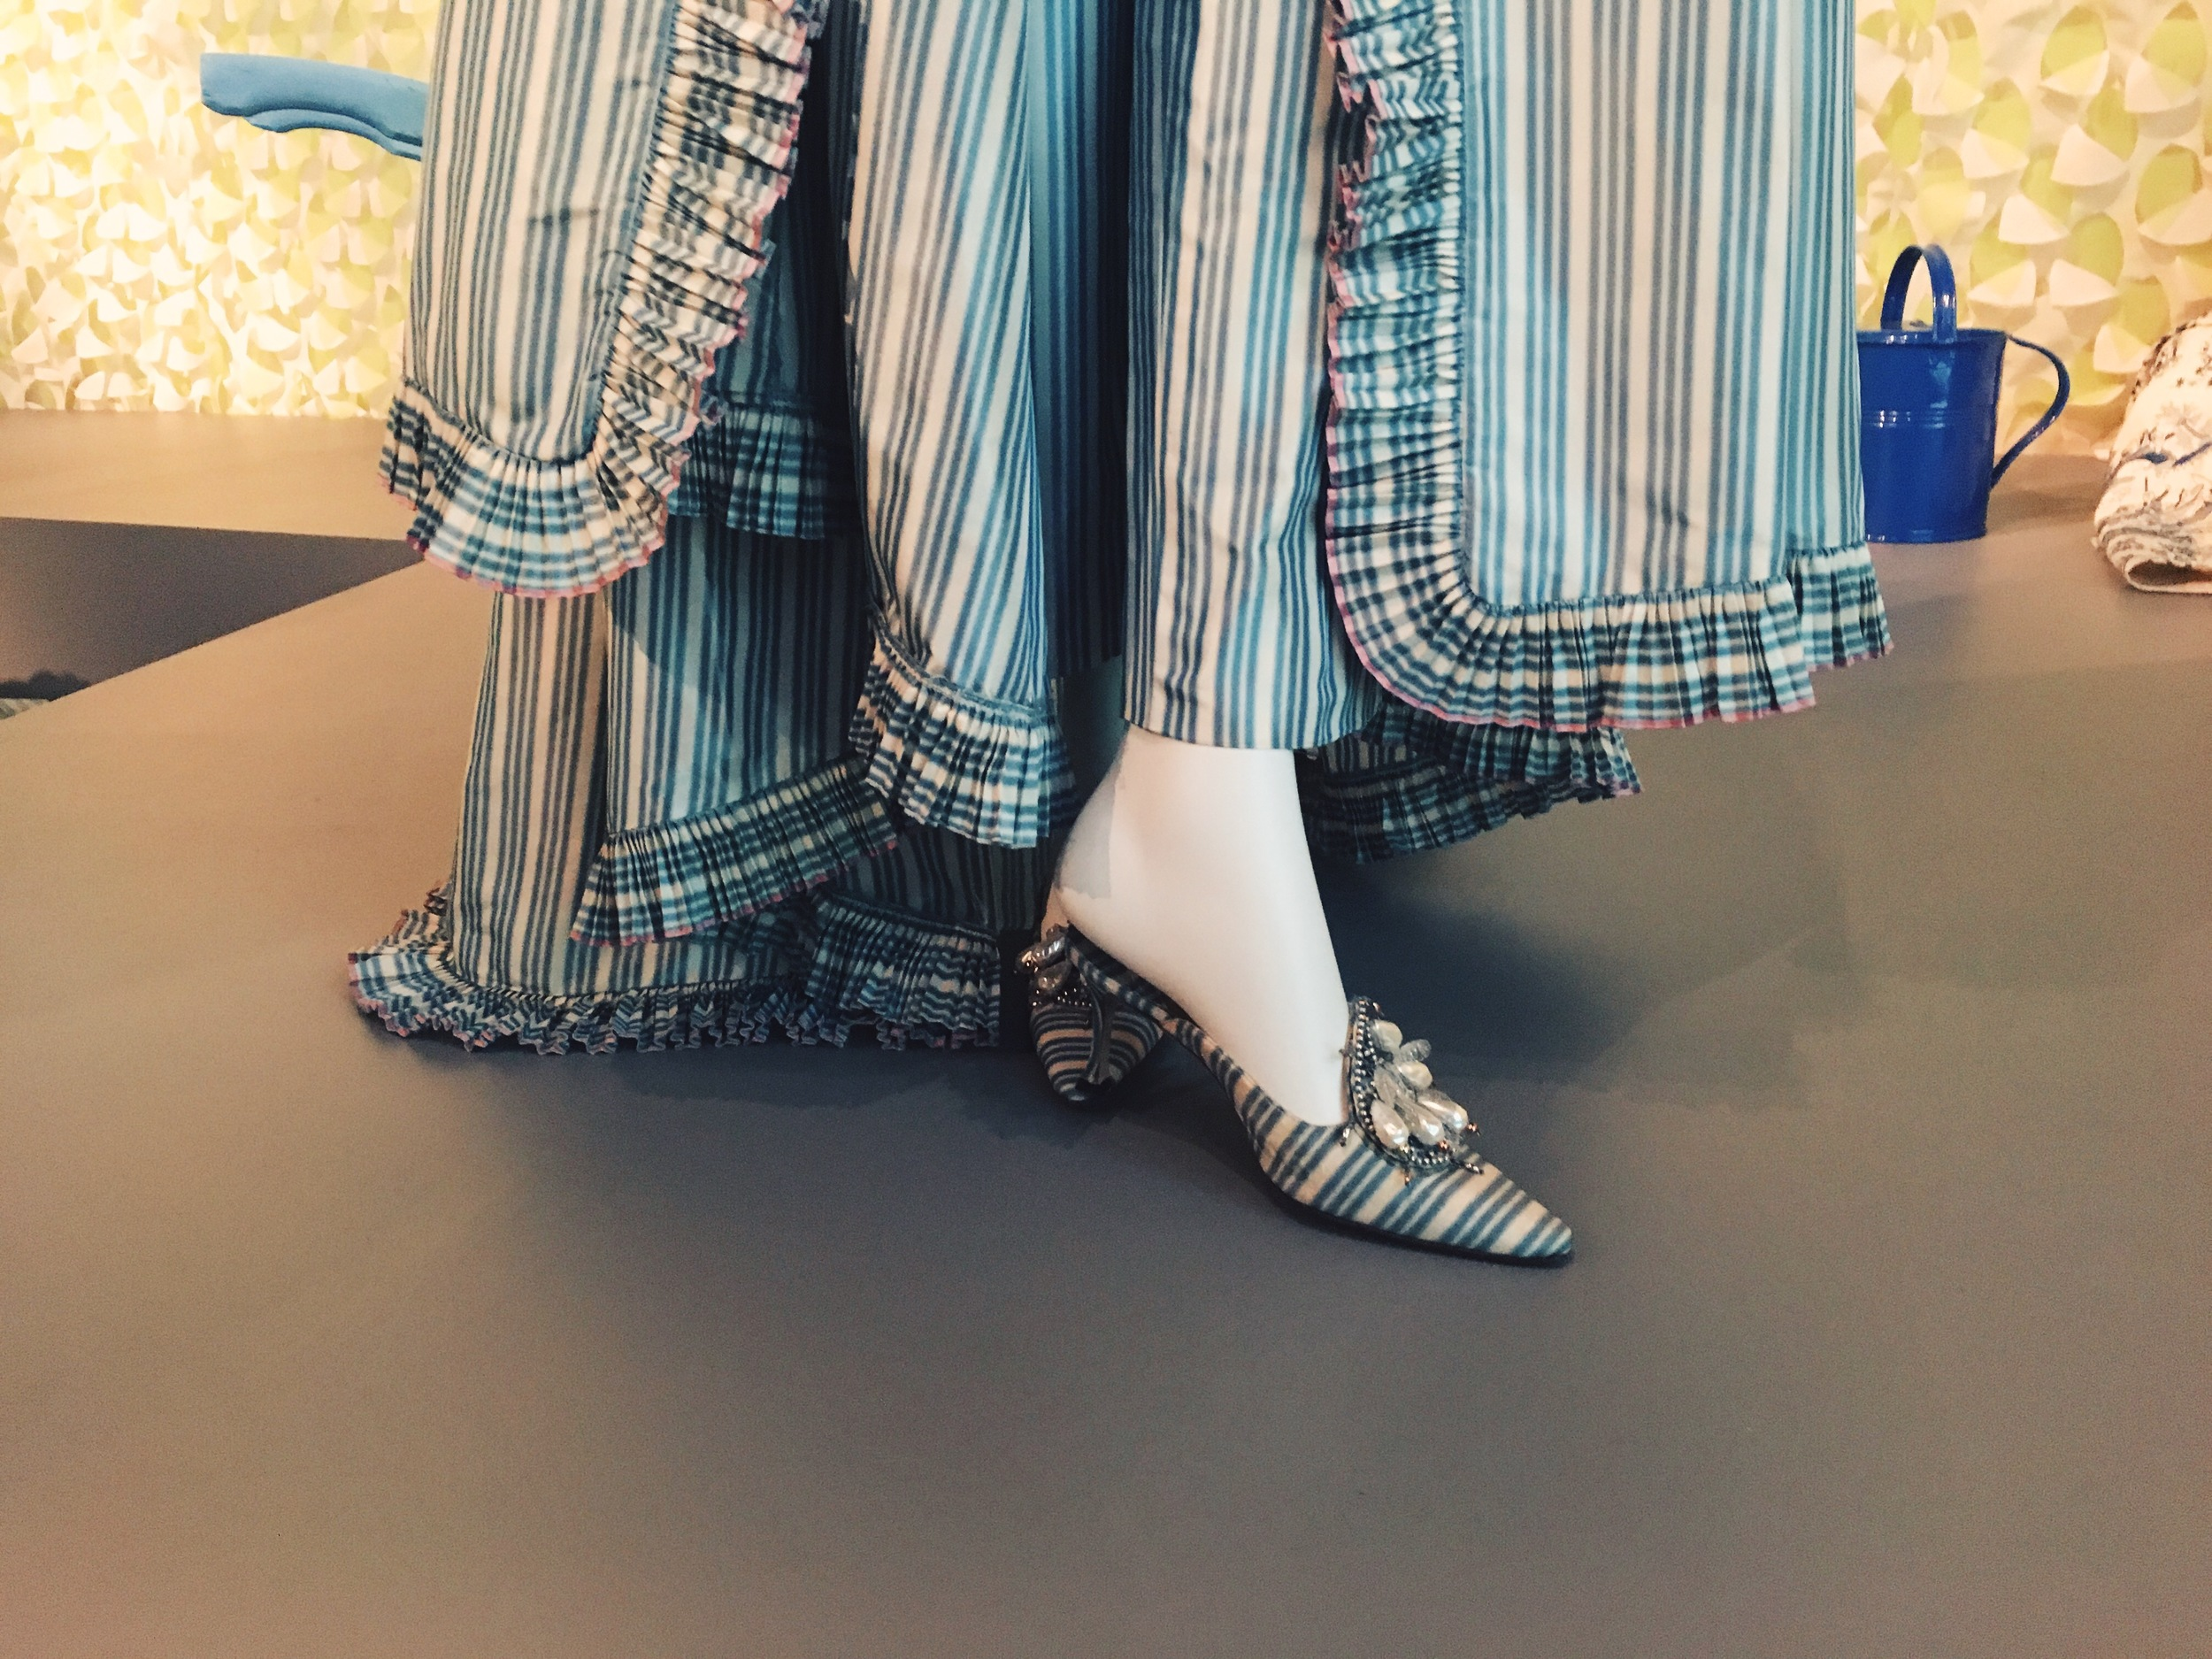 Manolo Blahnik shoes to match